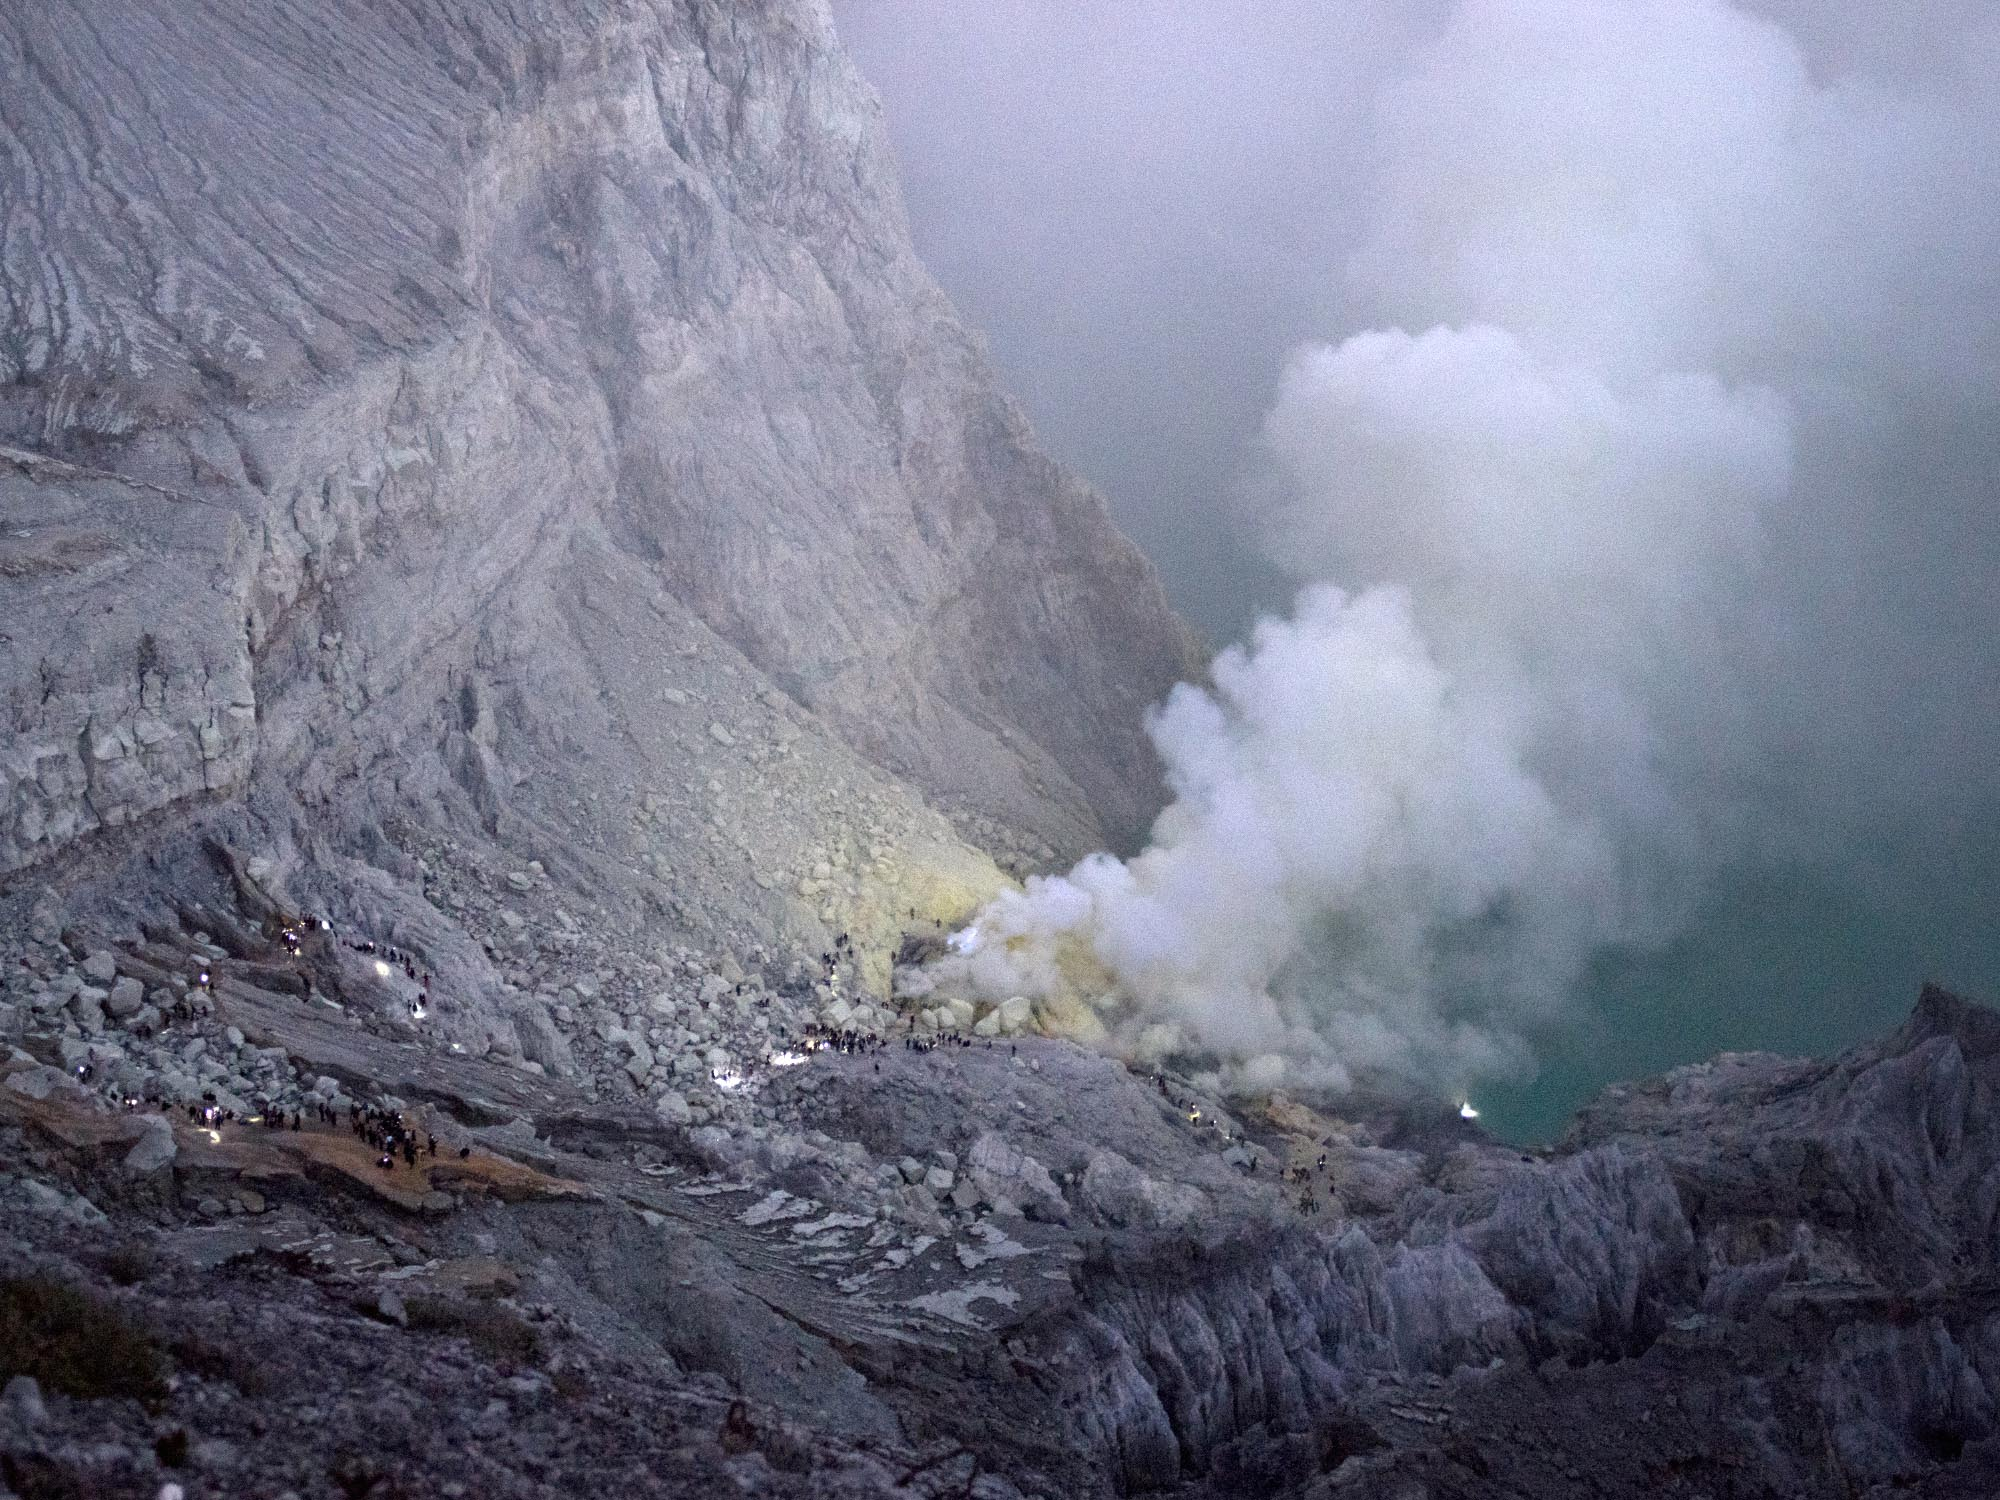 Ijen's crater before sunrise. Can you spot the faint blue flame?